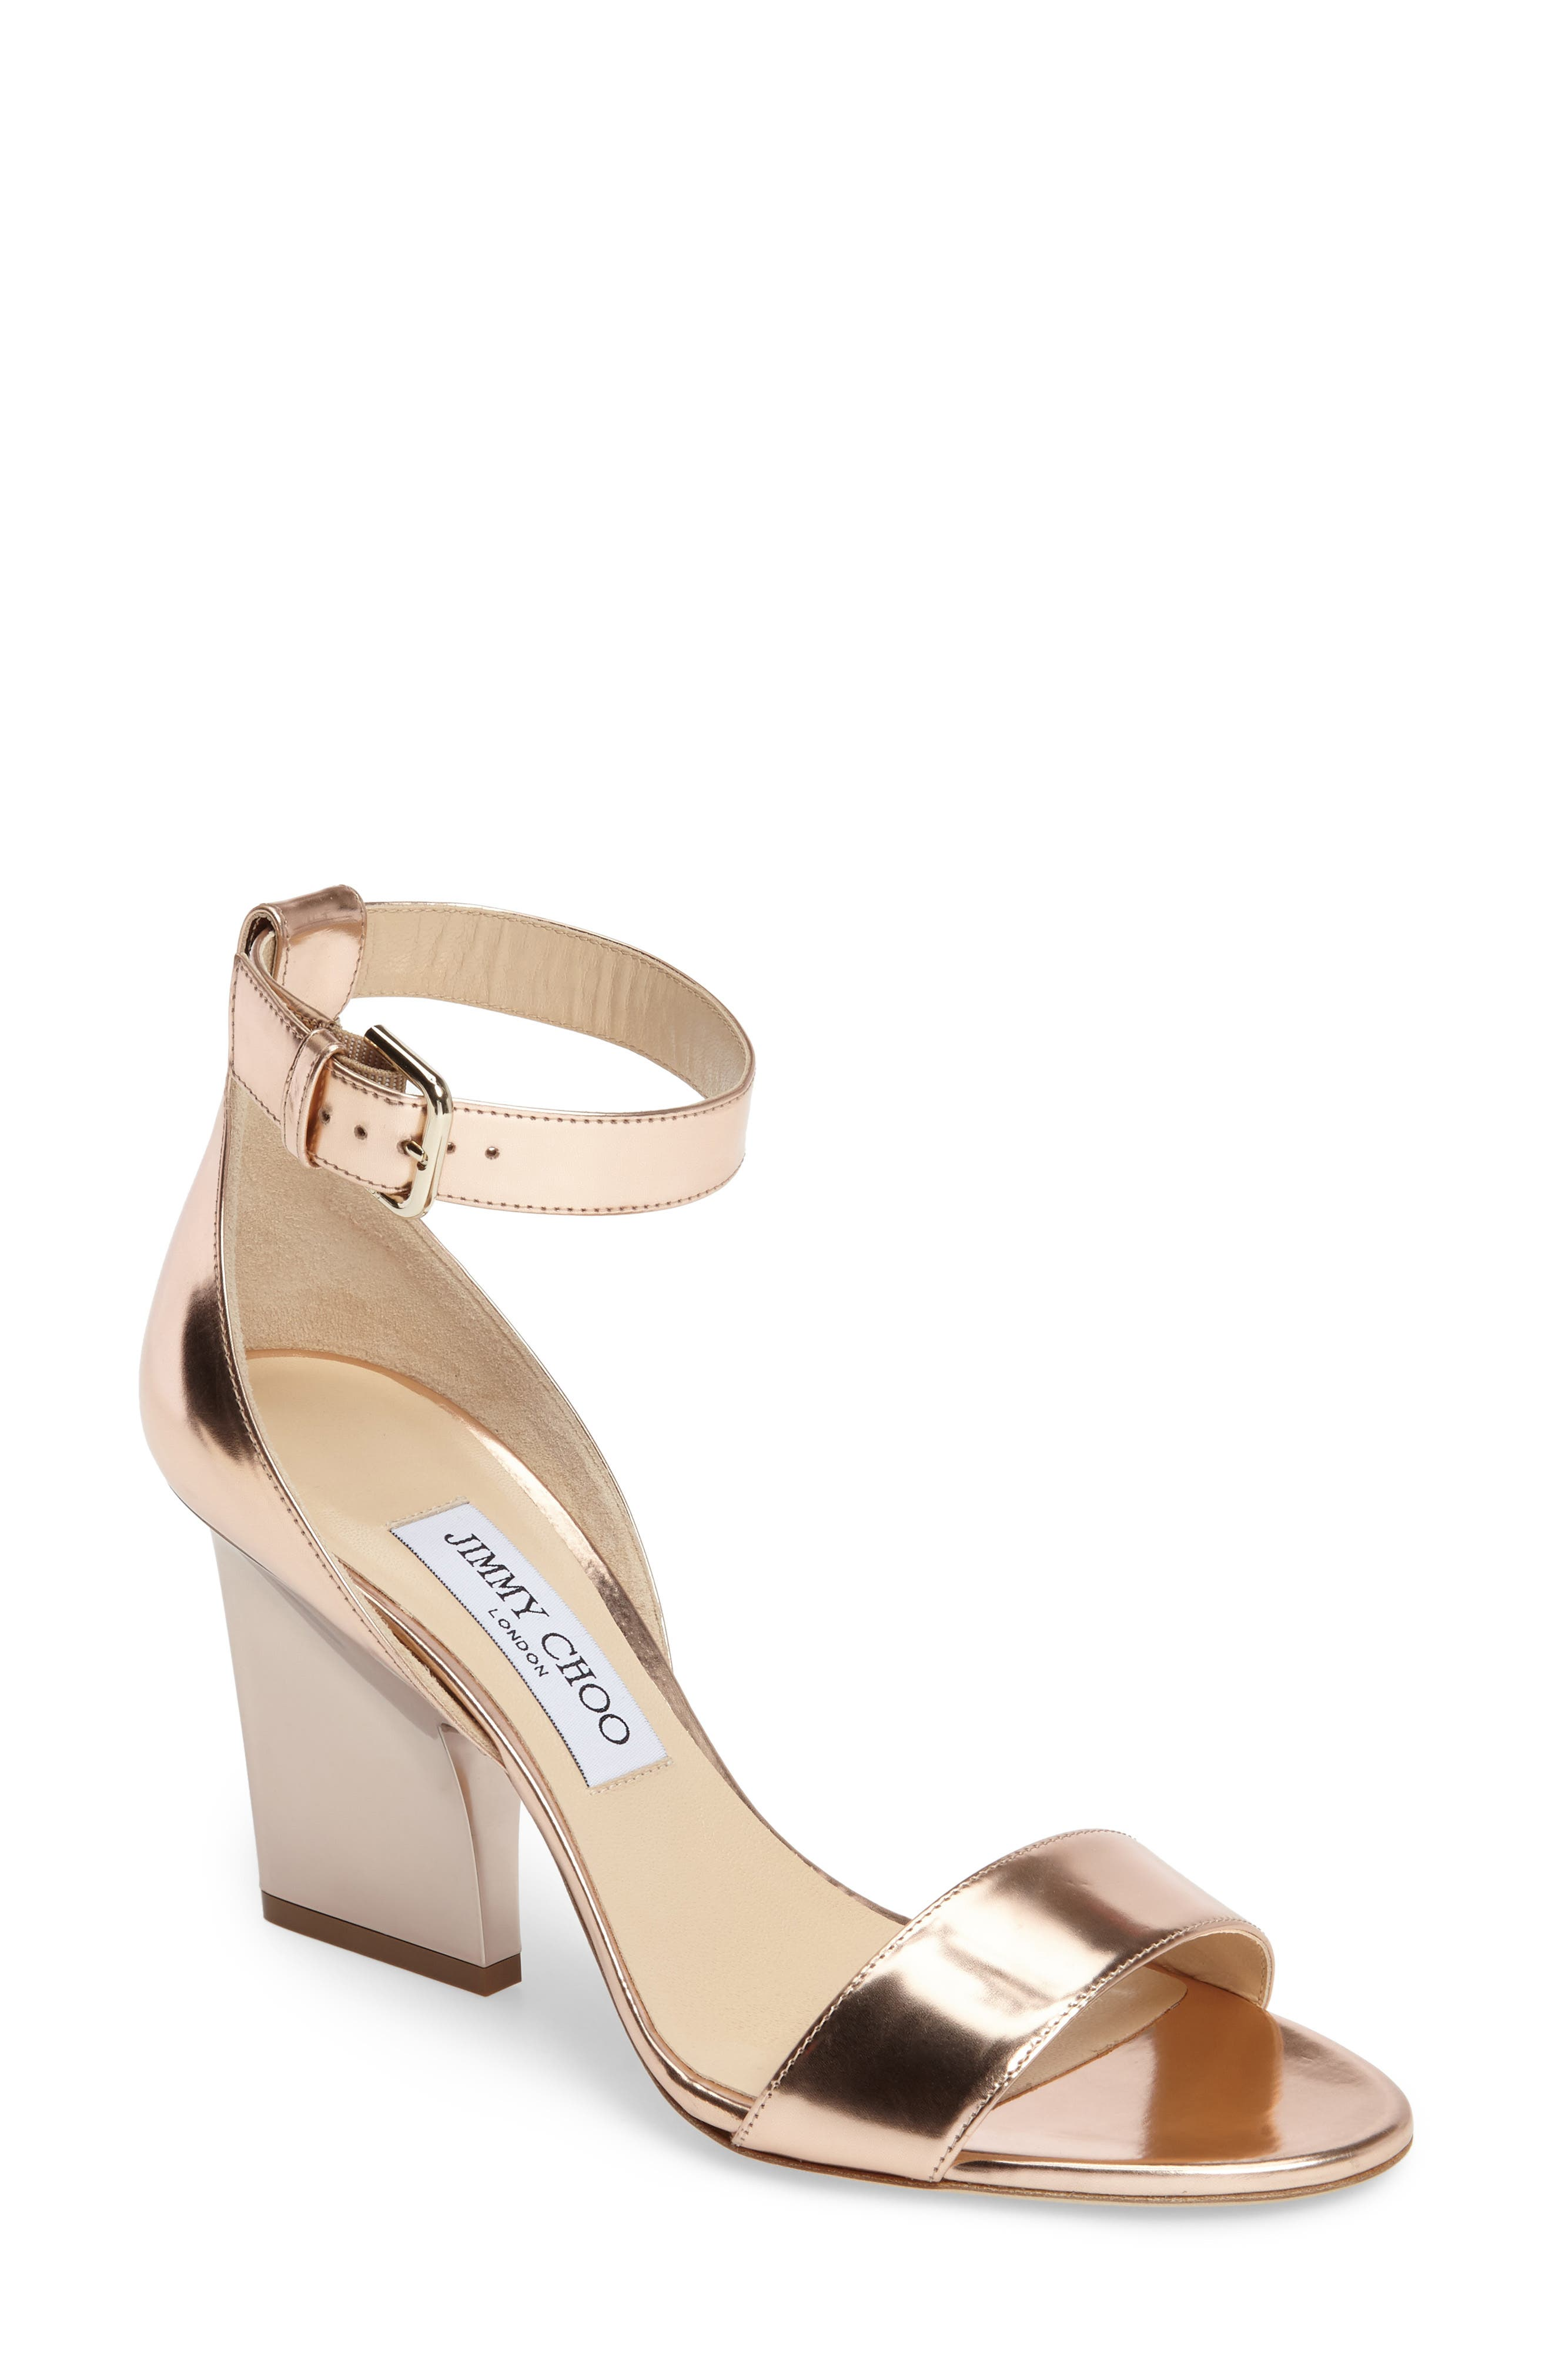 Main Image - Jimmy Choo Edina Ankle Strap Sandal (Women)